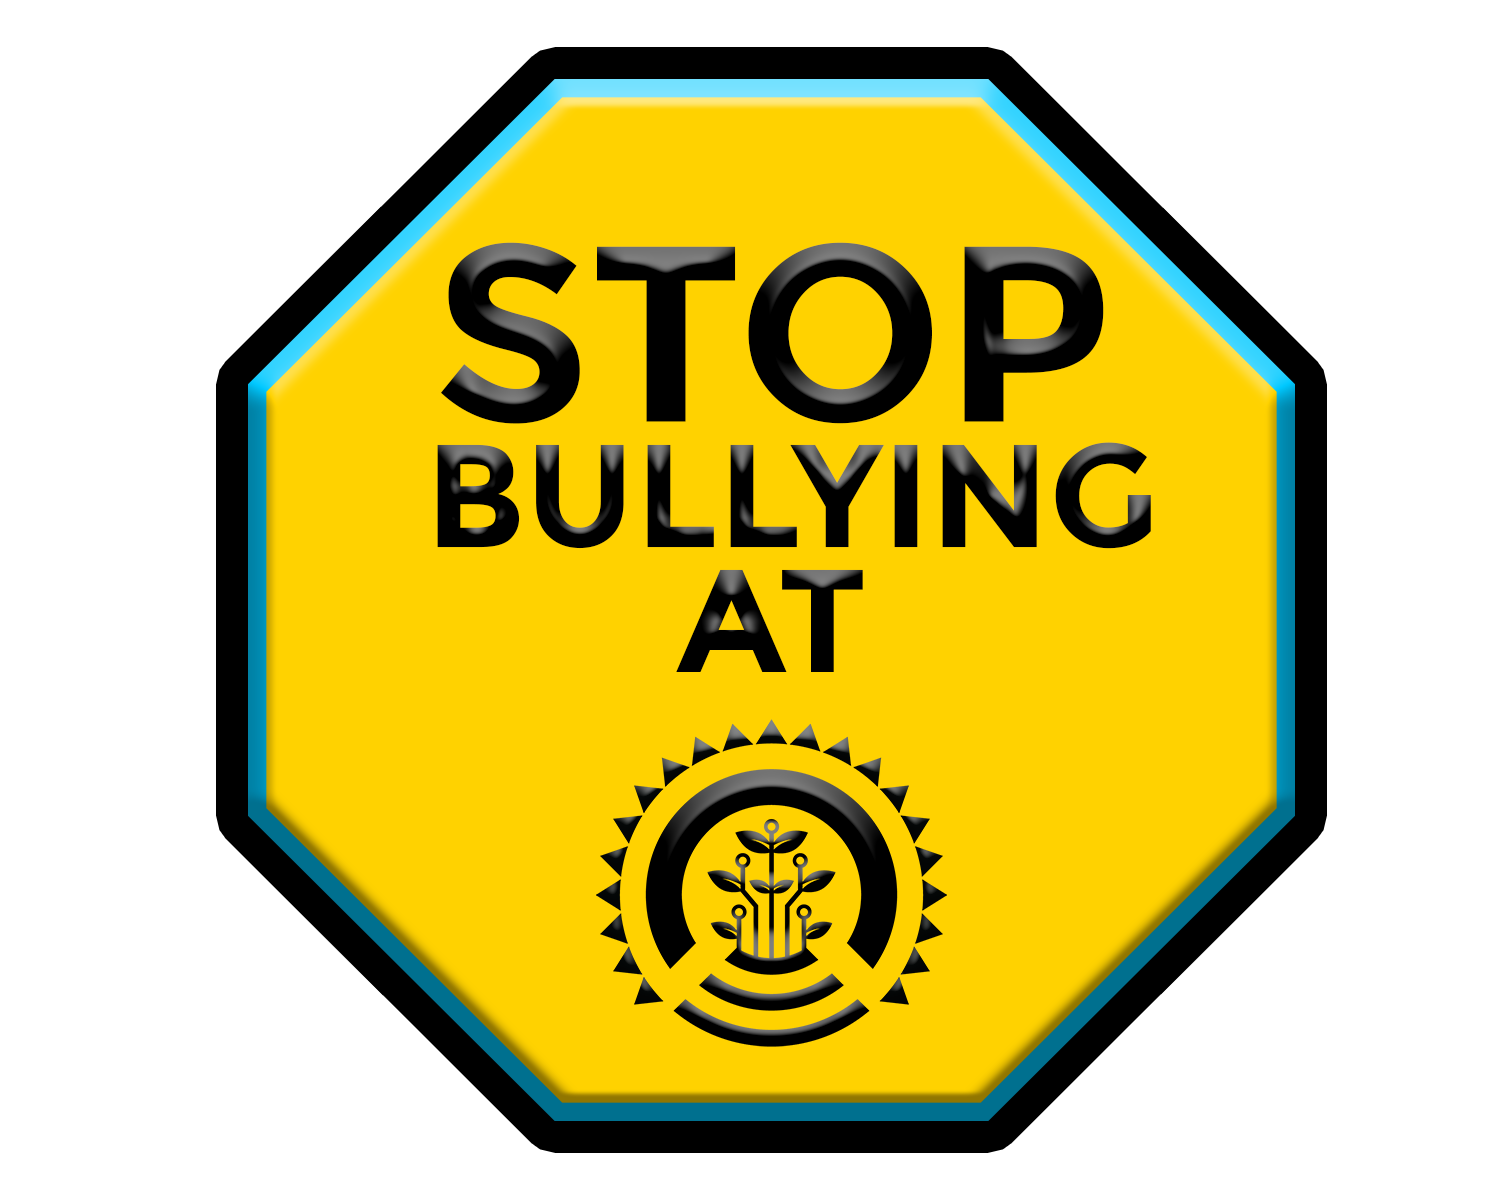 stop bullying at PUHSD